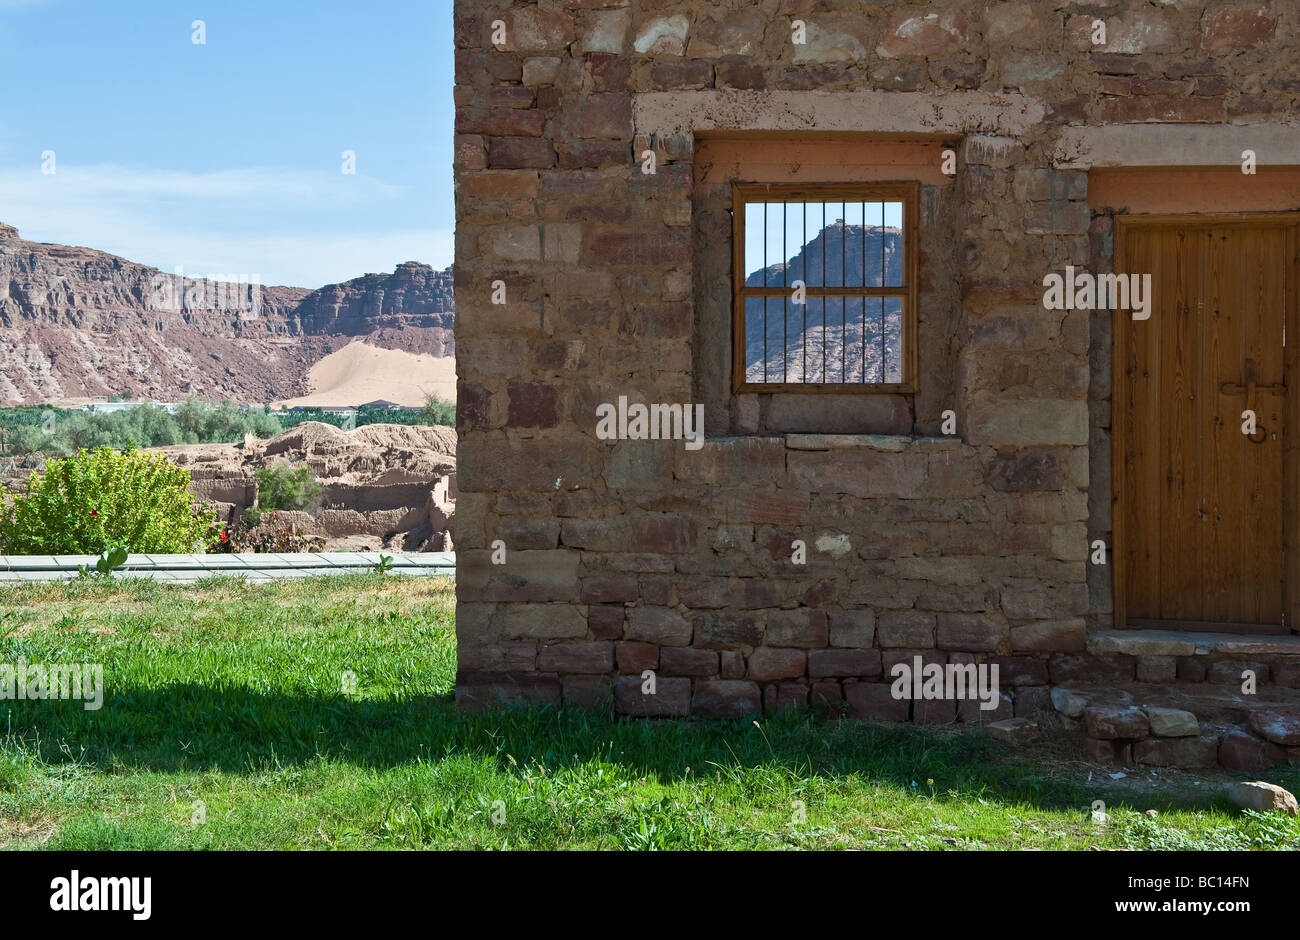 Al Ula the ruins of the old city - Stock Image